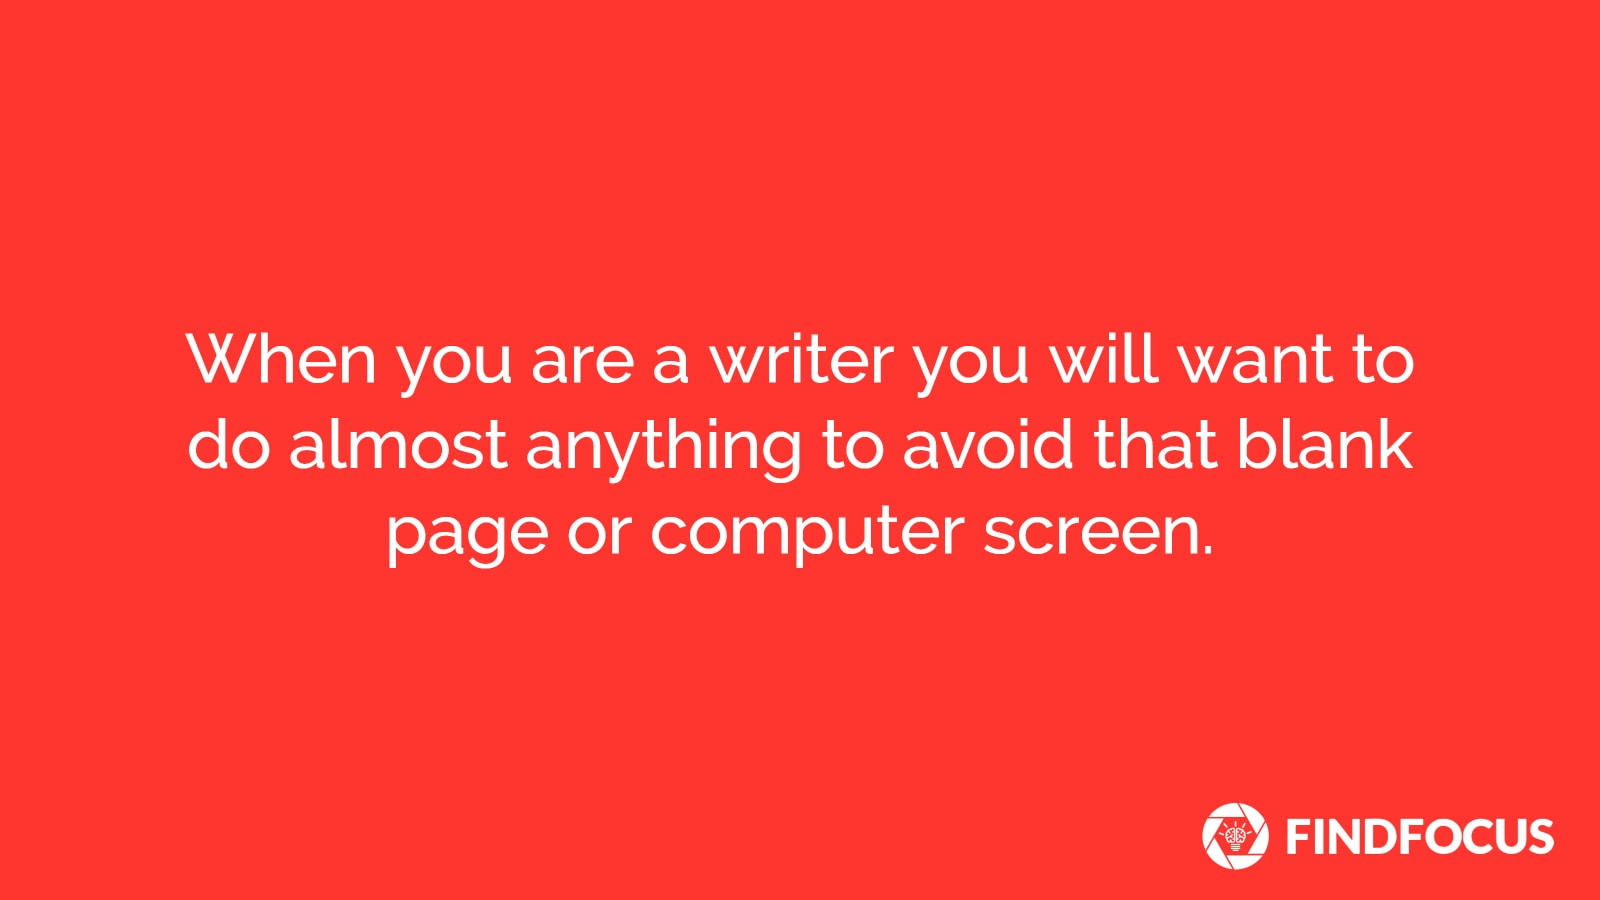 When you are a writer you will want to do almost anything to avoid that blank page or computer screen.